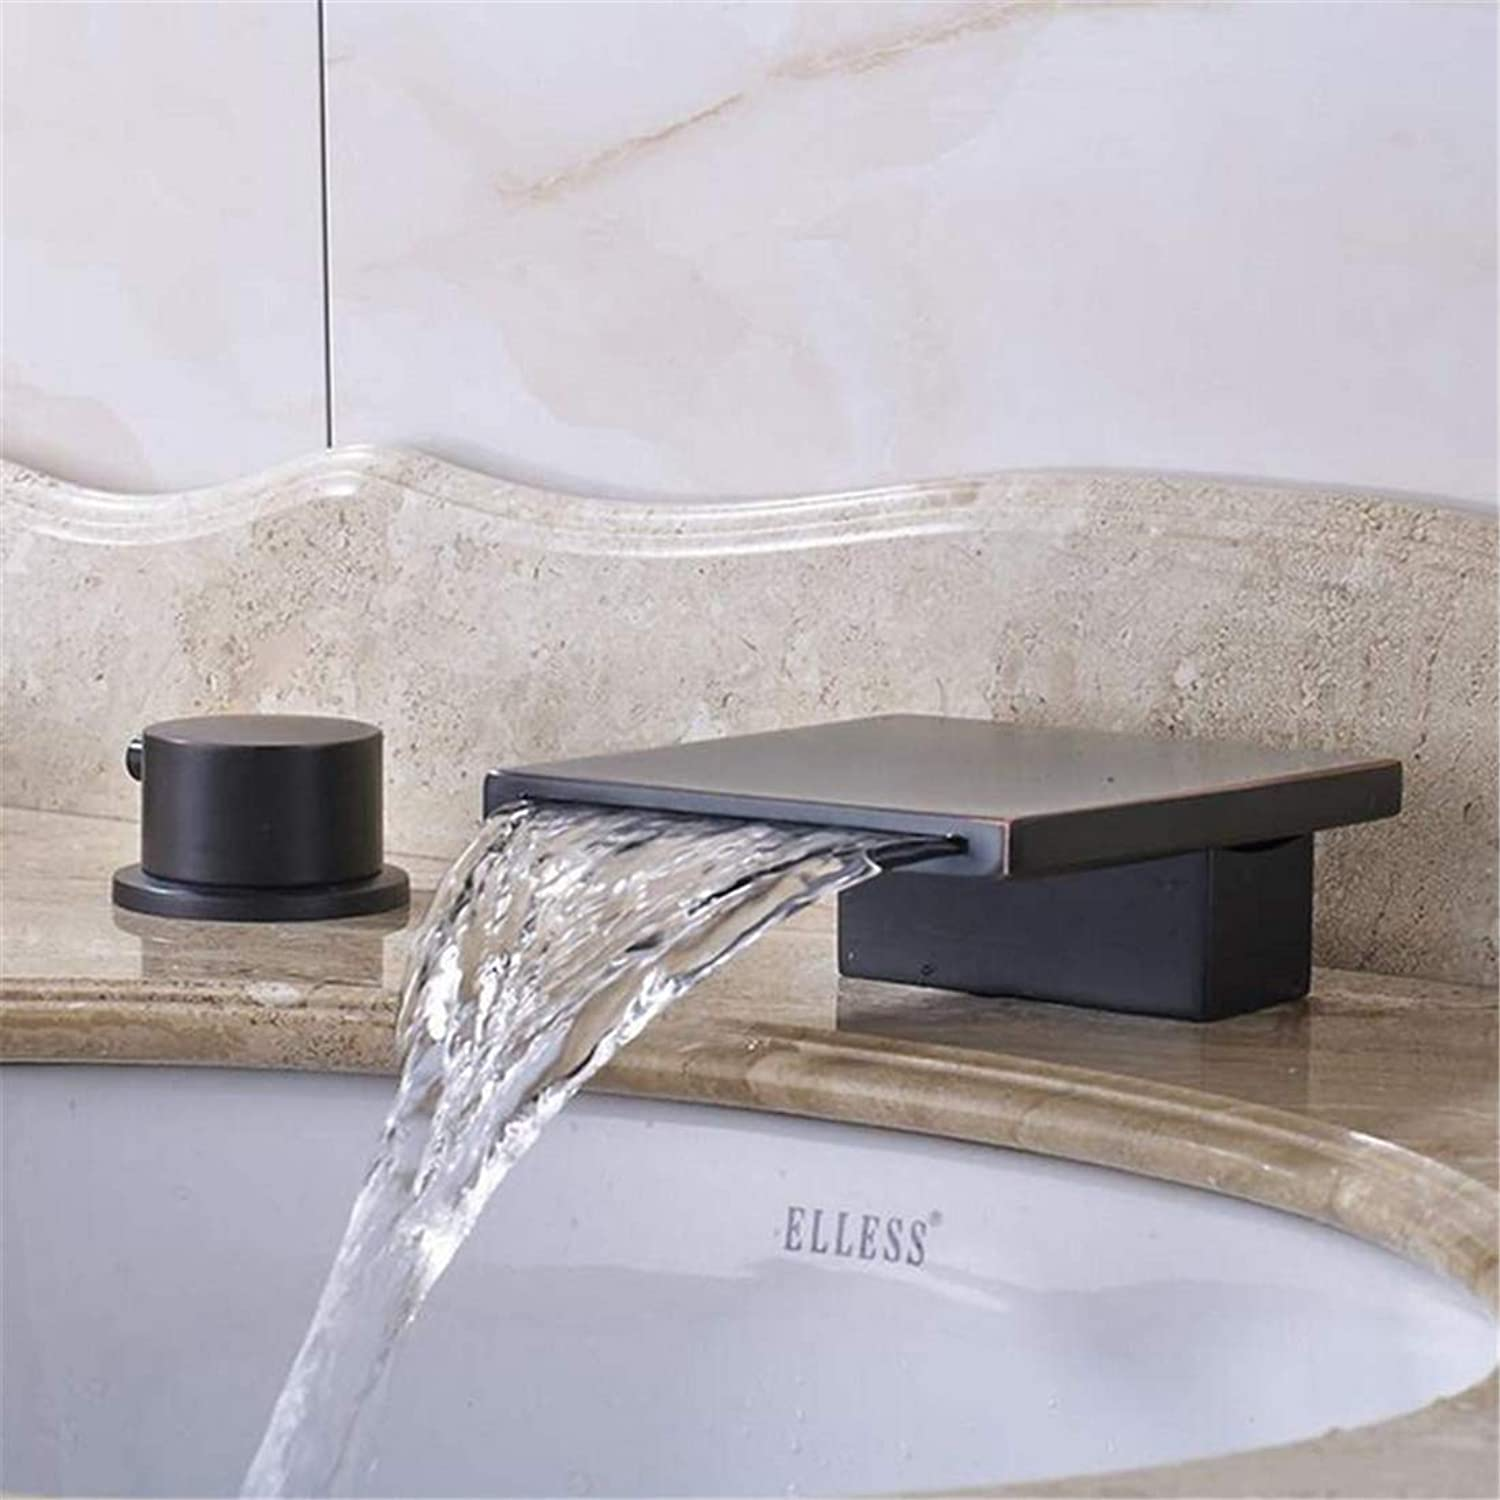 Retro Faucetwashbasin Mixer Solid Brass Oil Rubbed Bronze Widespread 3Pcs Waterfall Spout Bathroom Sink Faucet